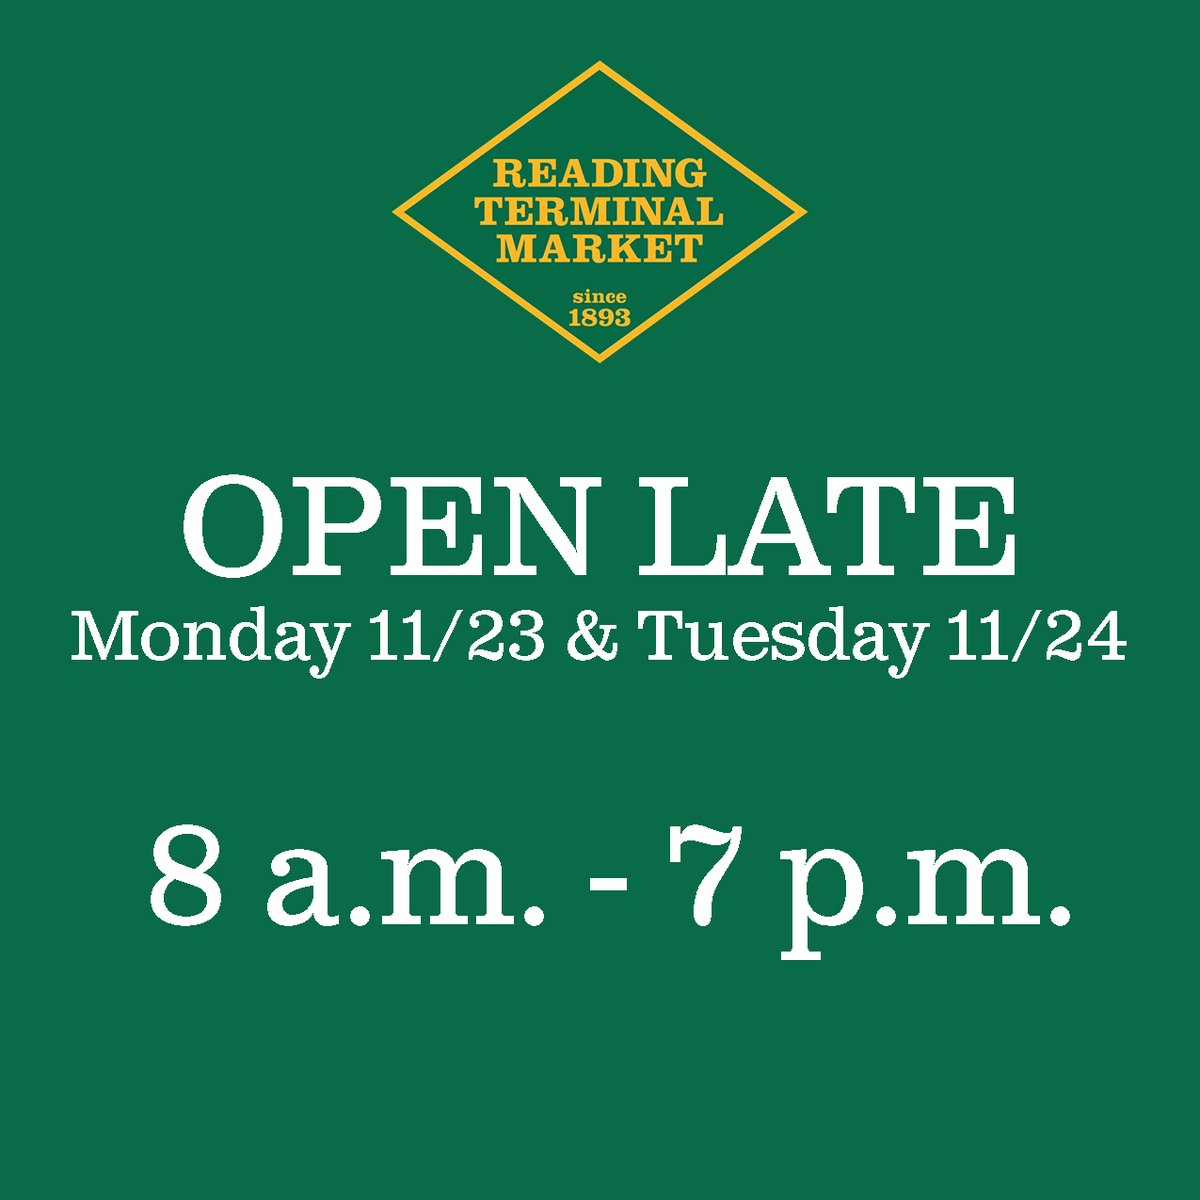 Extended Hours!  Reading Terminal will be open 8 a.m. - 7 p.m. on Monday, Nov. 23 & Tuesday, Nov. 24 for a couple extra hours of holiday shopping.   Individual merchants may operate regular hours. Please call ahead if you are hoping to visit a specific store after 6 p.m. https://t.co/oTYthYImGd